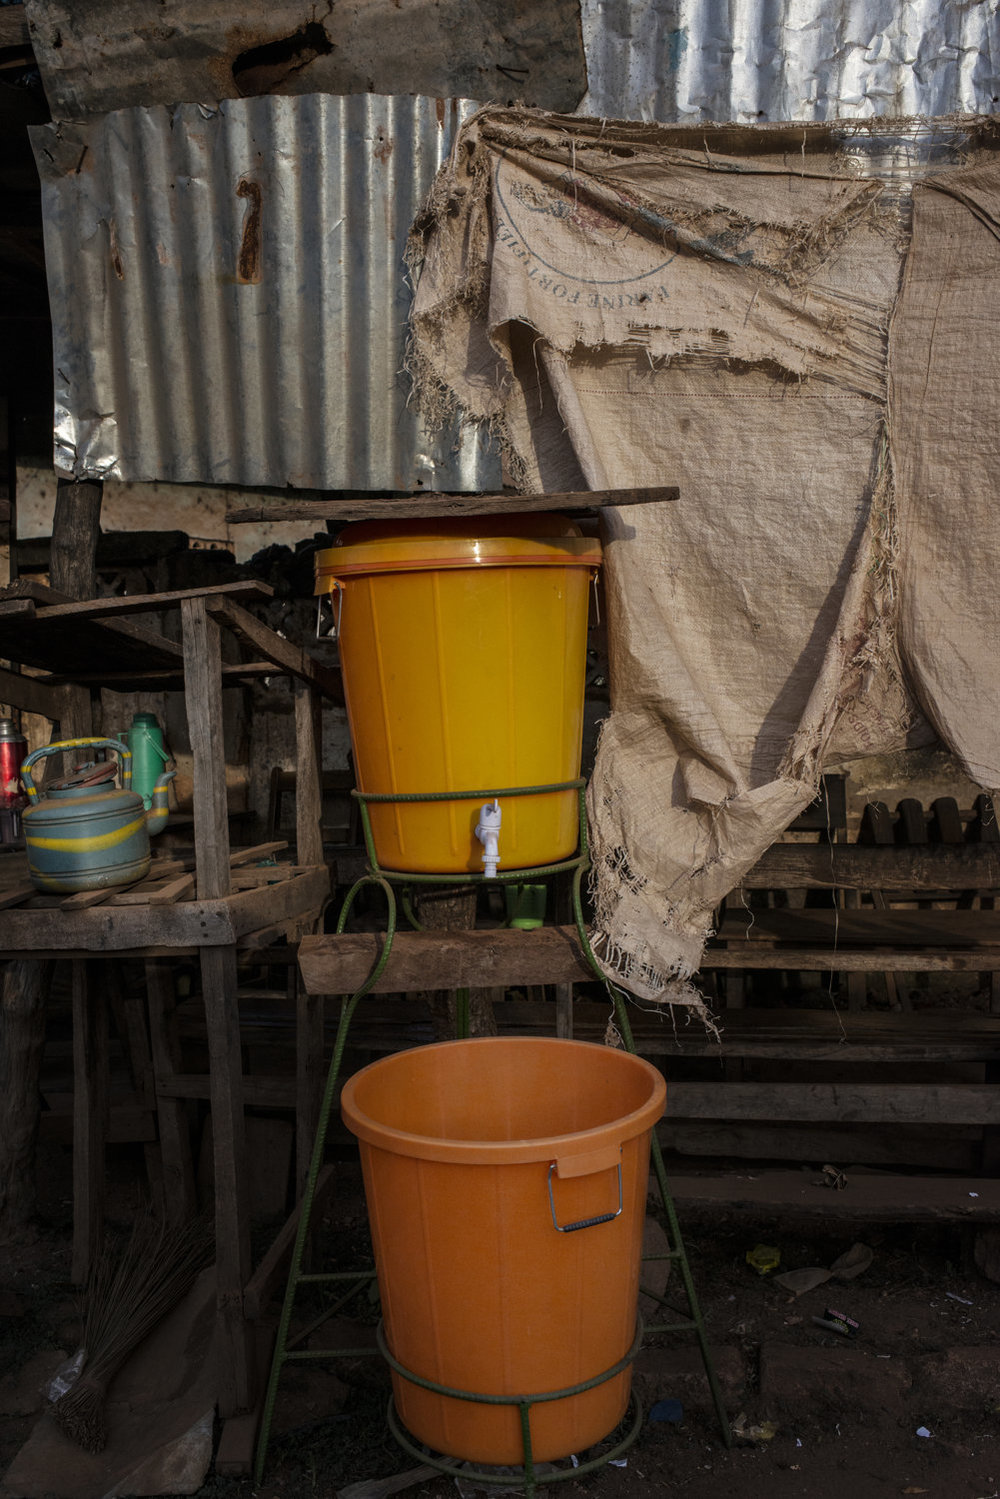 A hand washing stand near the market in Faranah, Guinea. The stands contain a mixture of bleach and water which kills germs including ebola. These colorful basins can be found throughout the country.